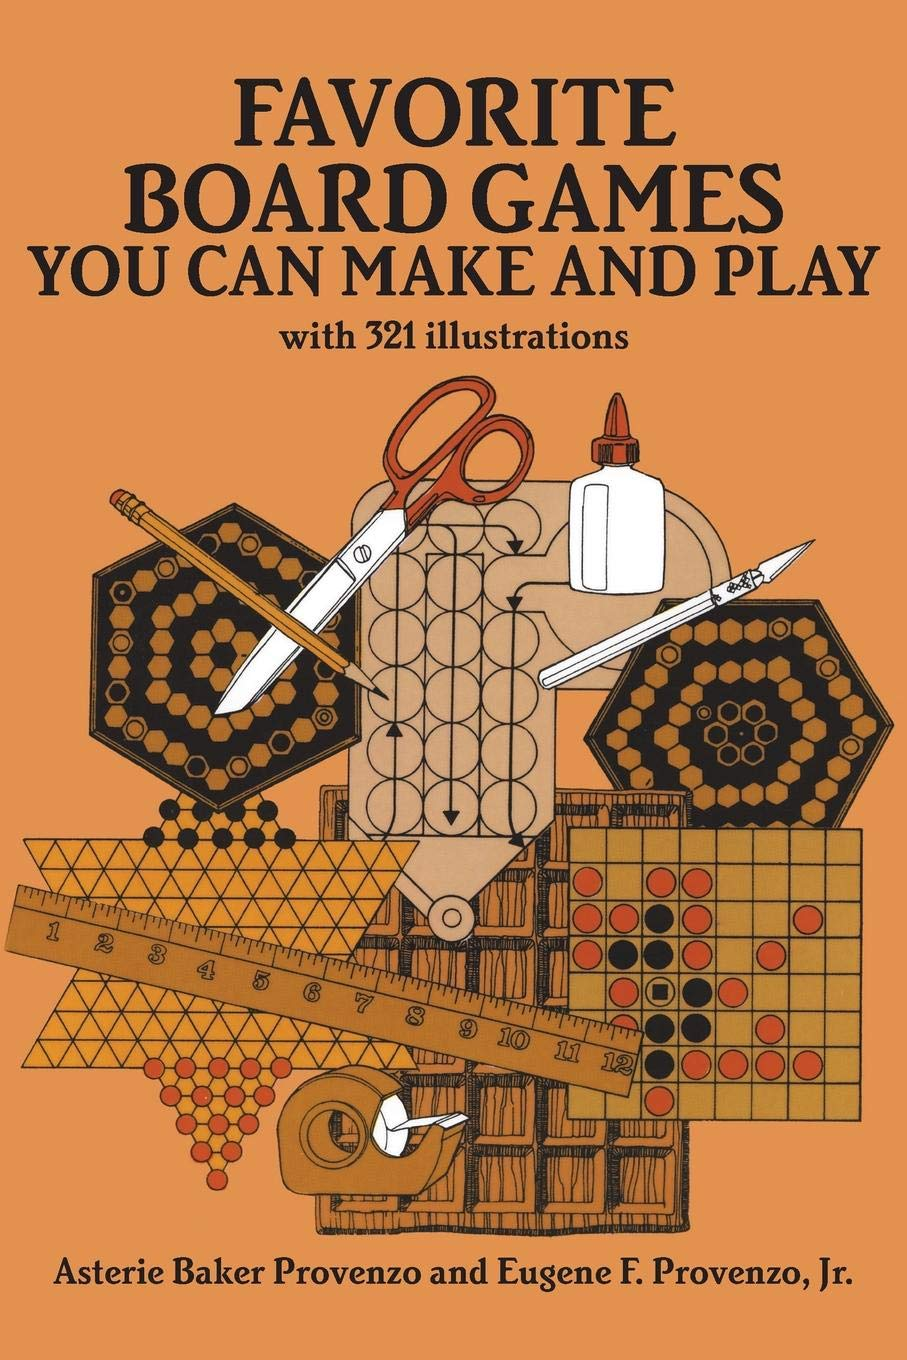 Favorite Board Games You Can Make and Play: Asterie Baker